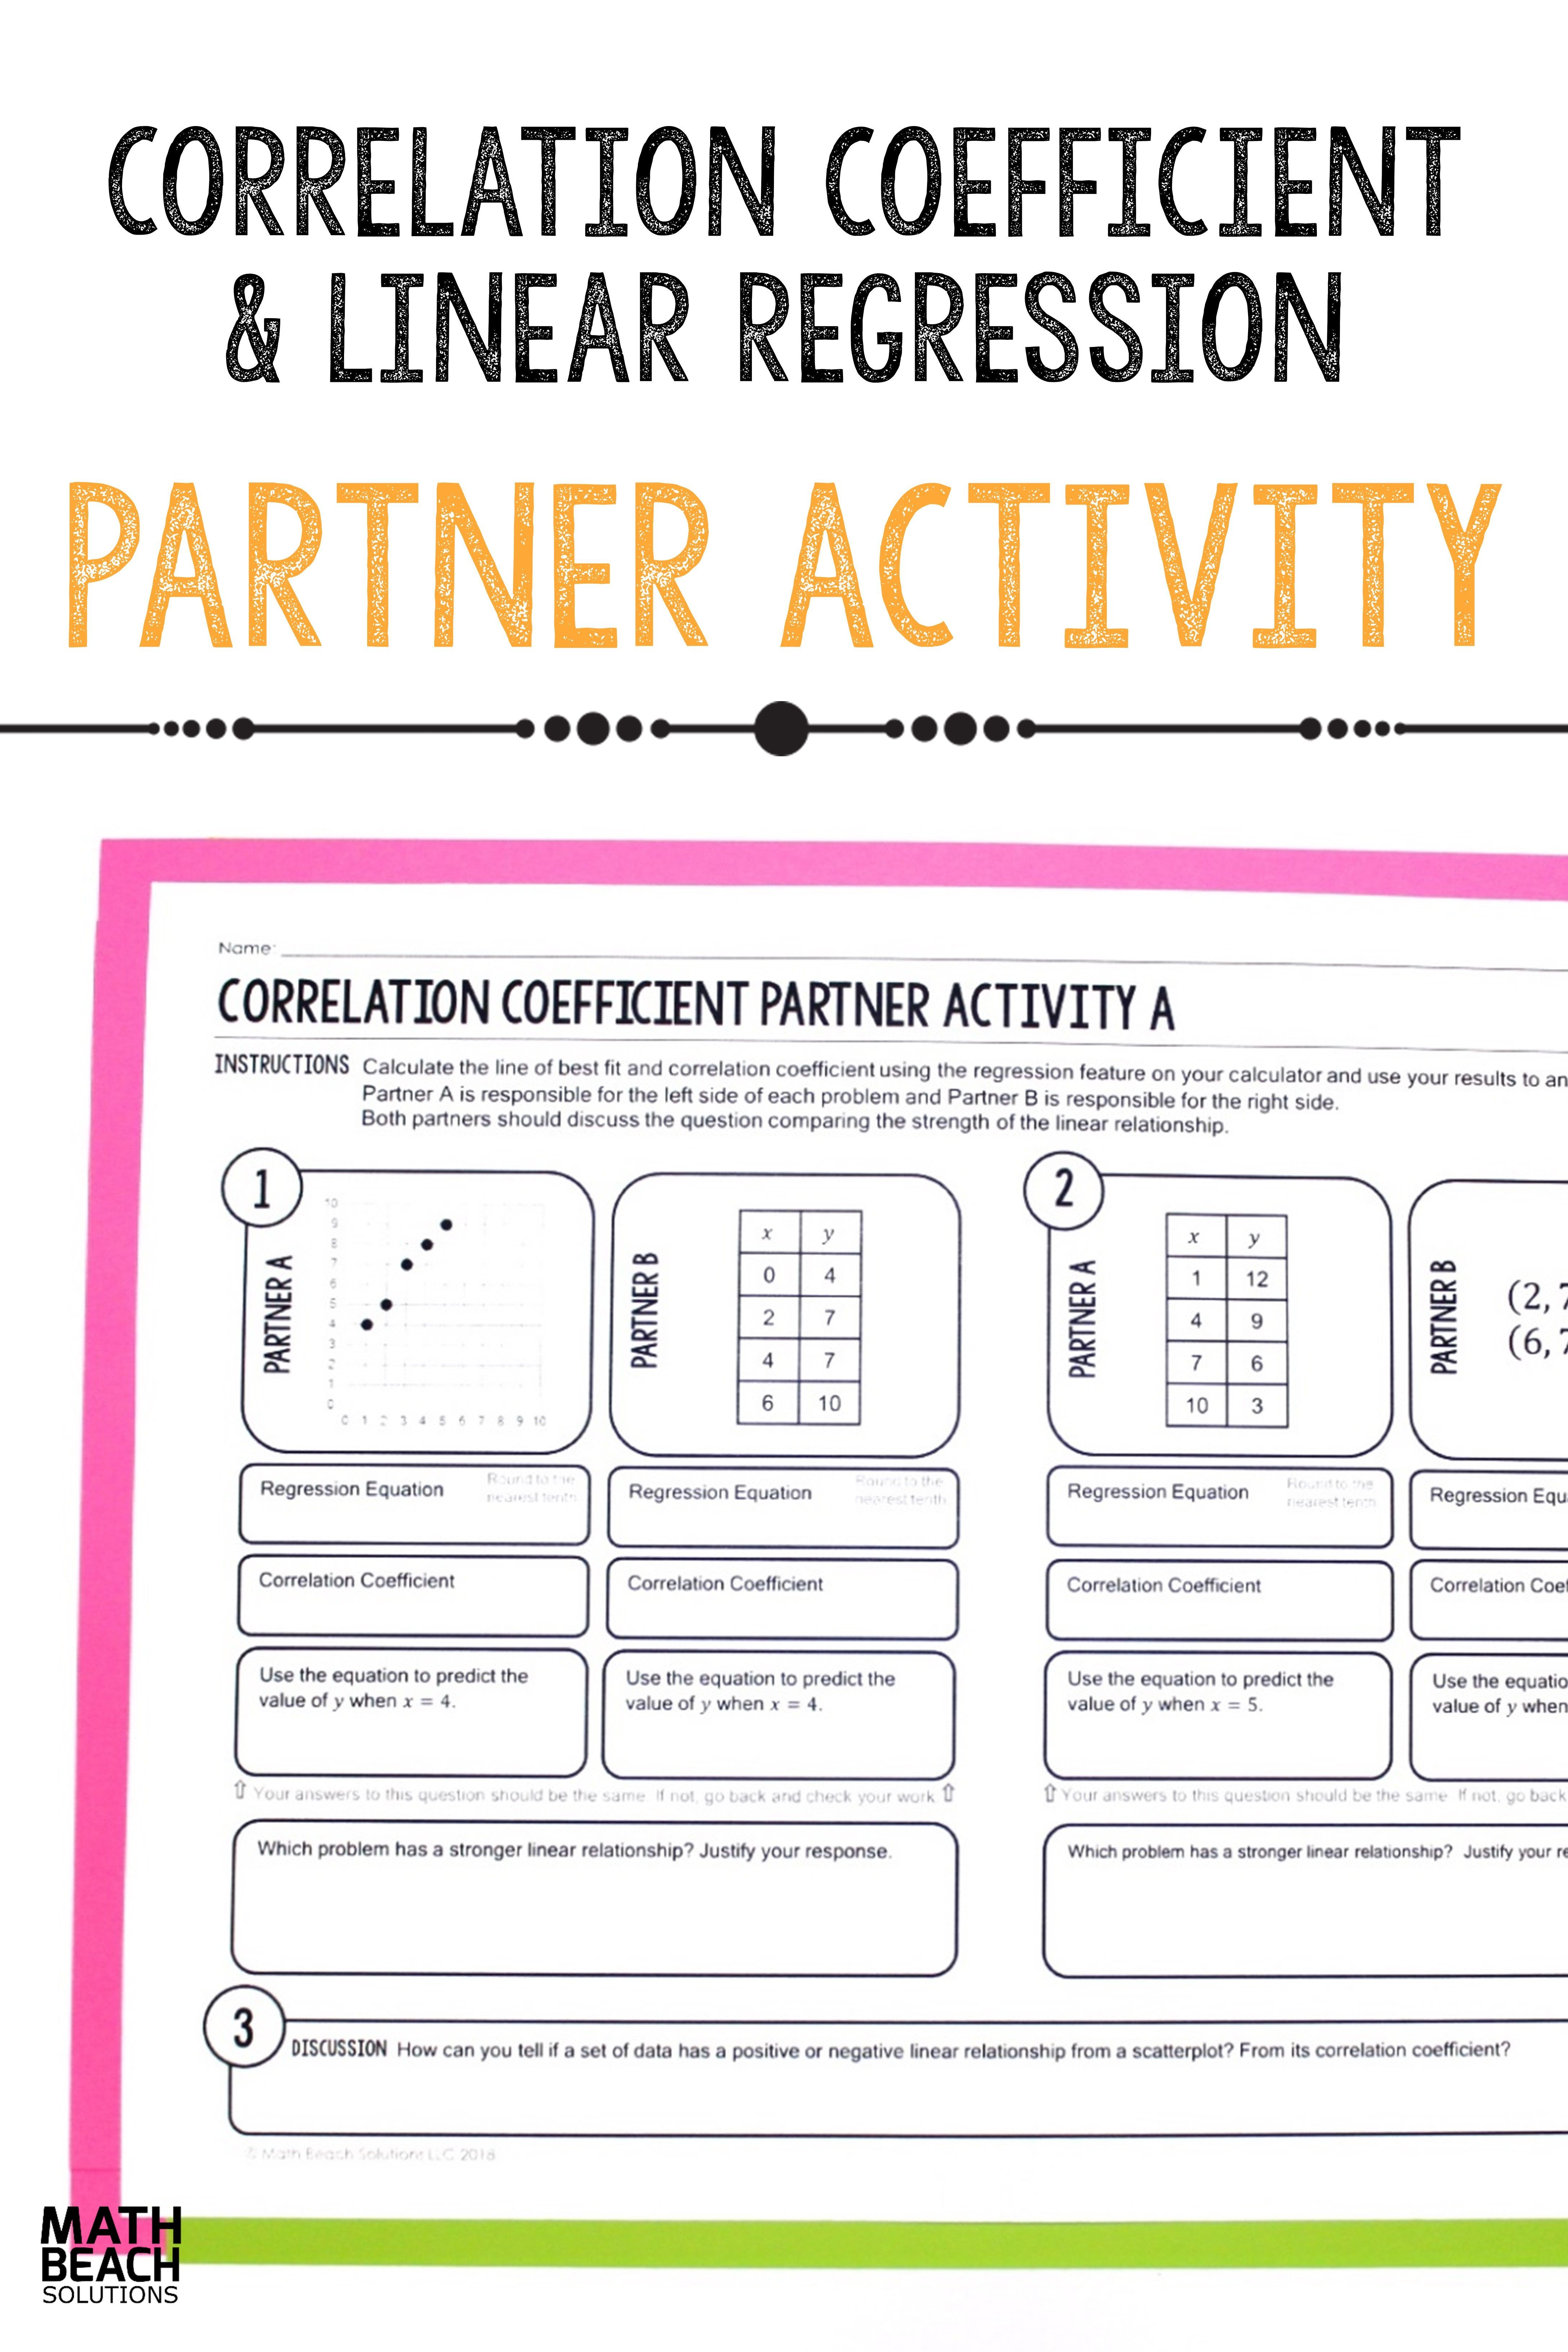 Encourage Collaborative Learning With The Correlation Coefficient Partner Activity Students Will C Linear Regression Linear Relationships Kids Math Worksheets